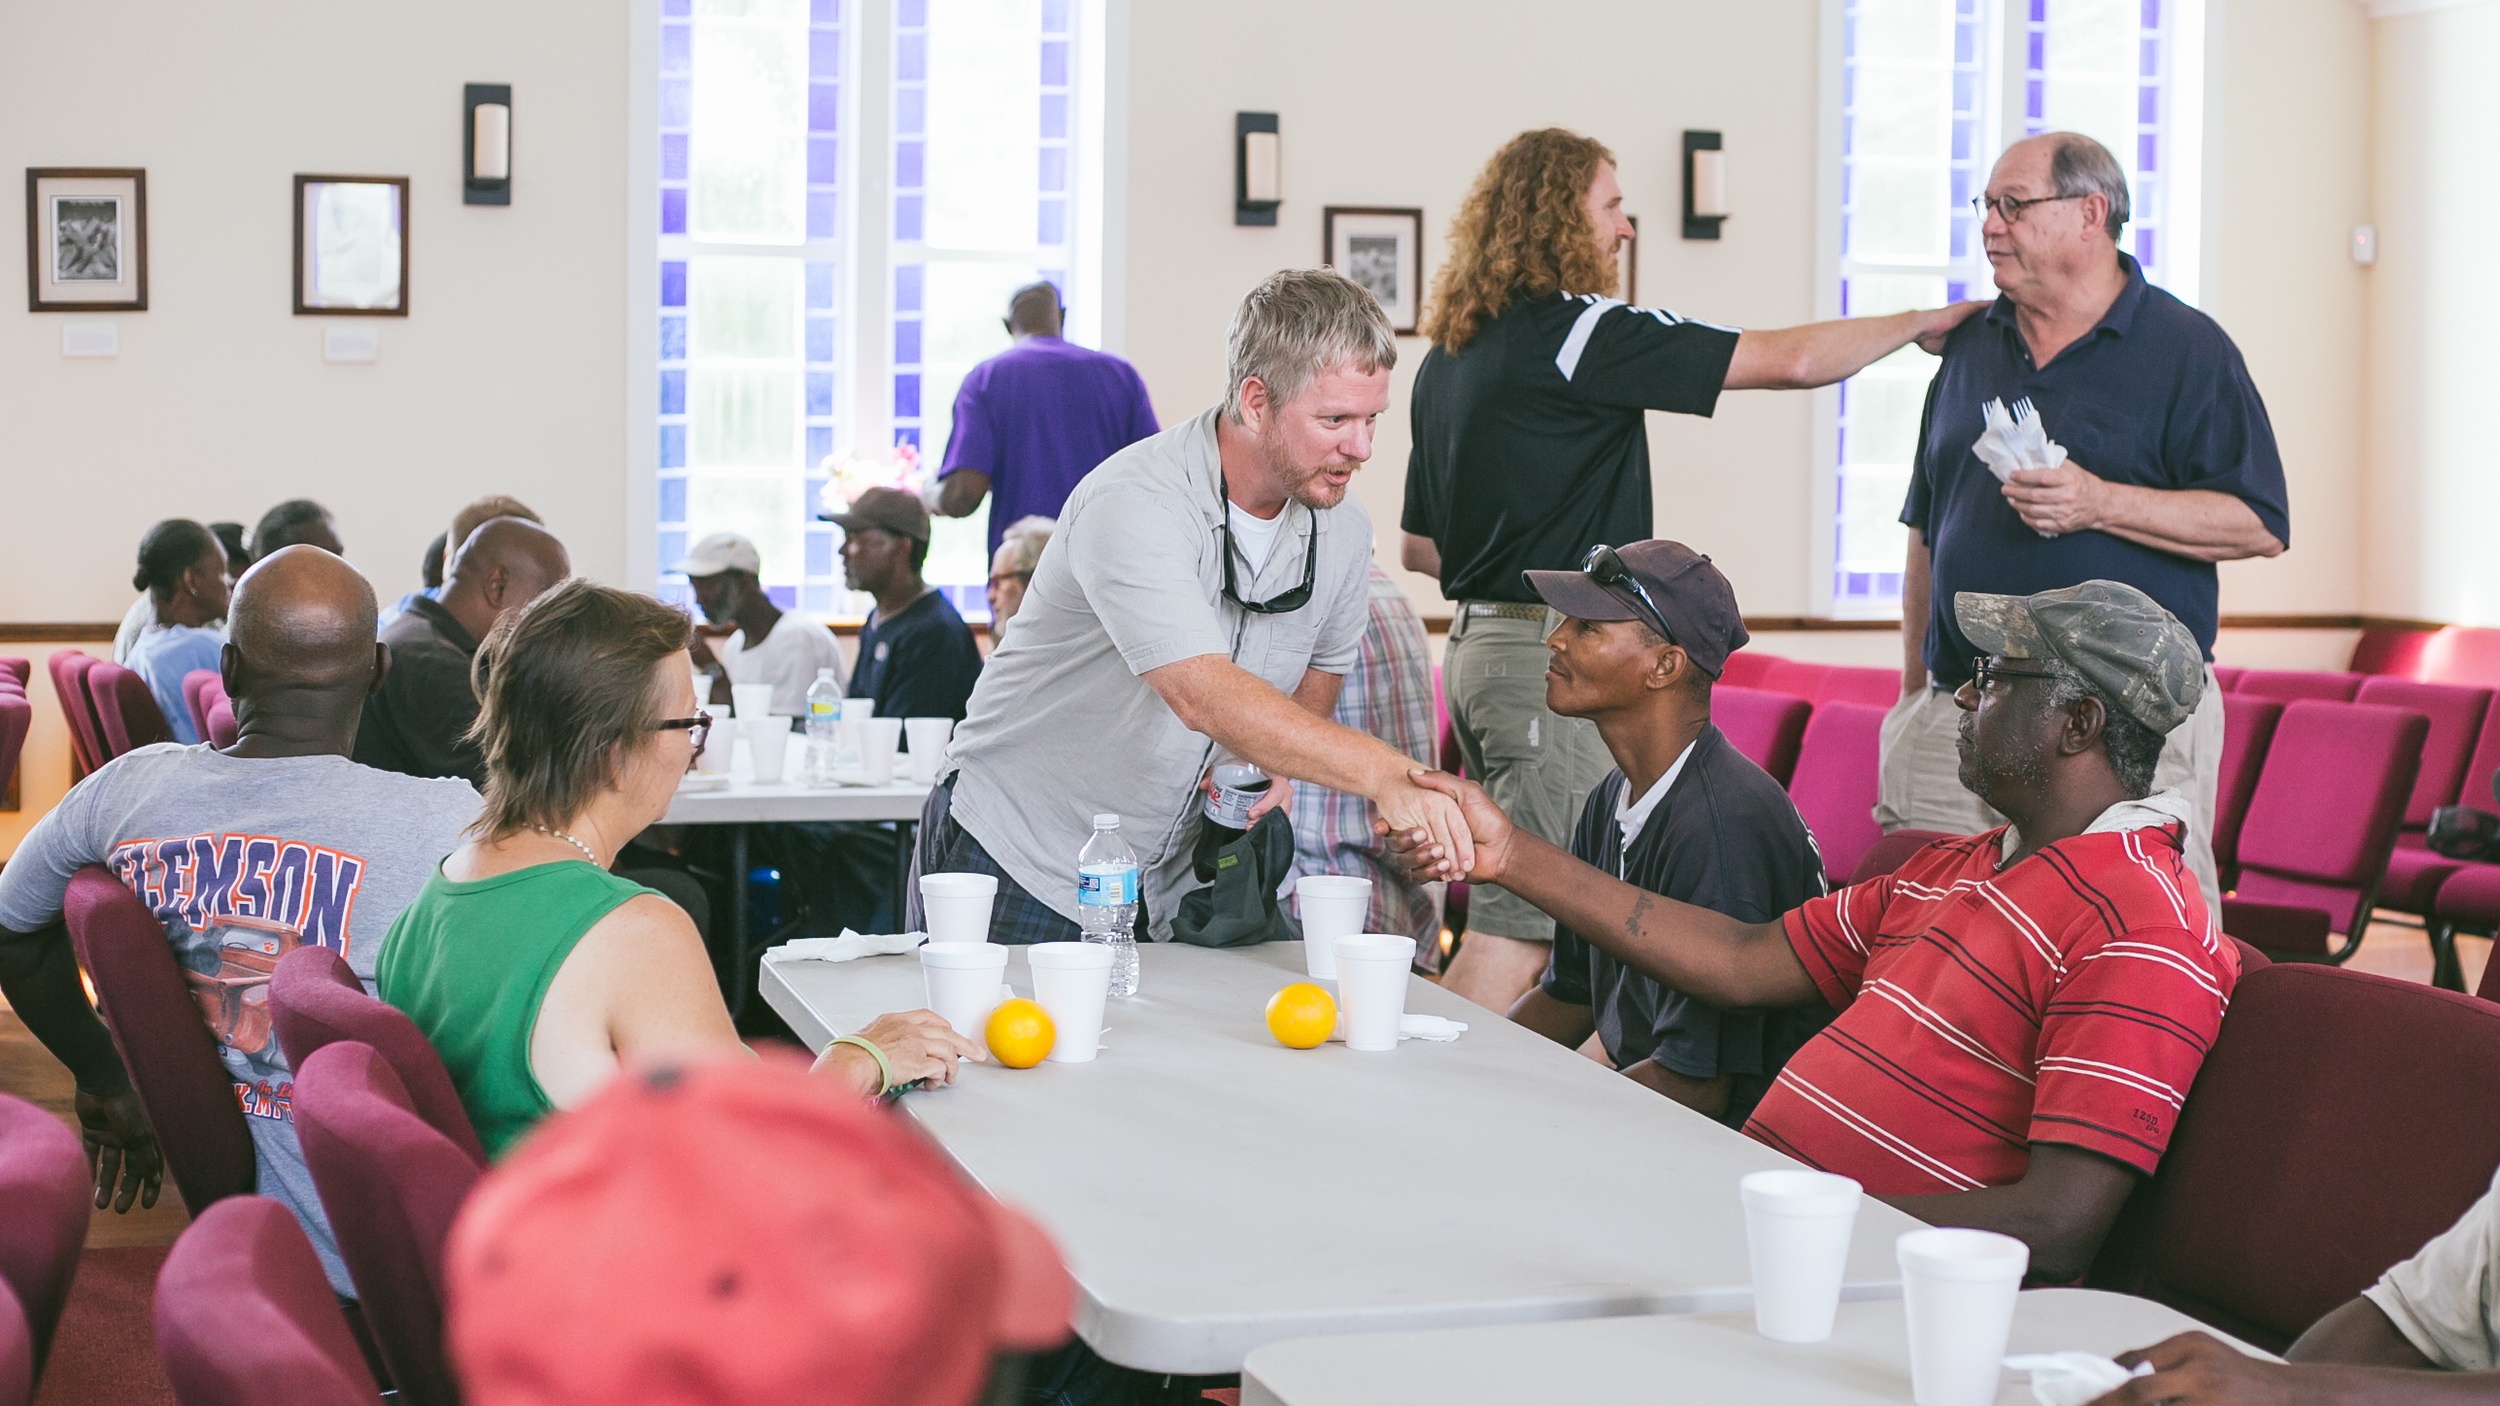 Members serving and connecting during our monthly brunch ministry at St. John's Chapel. Photos by Anna Warner, 2015